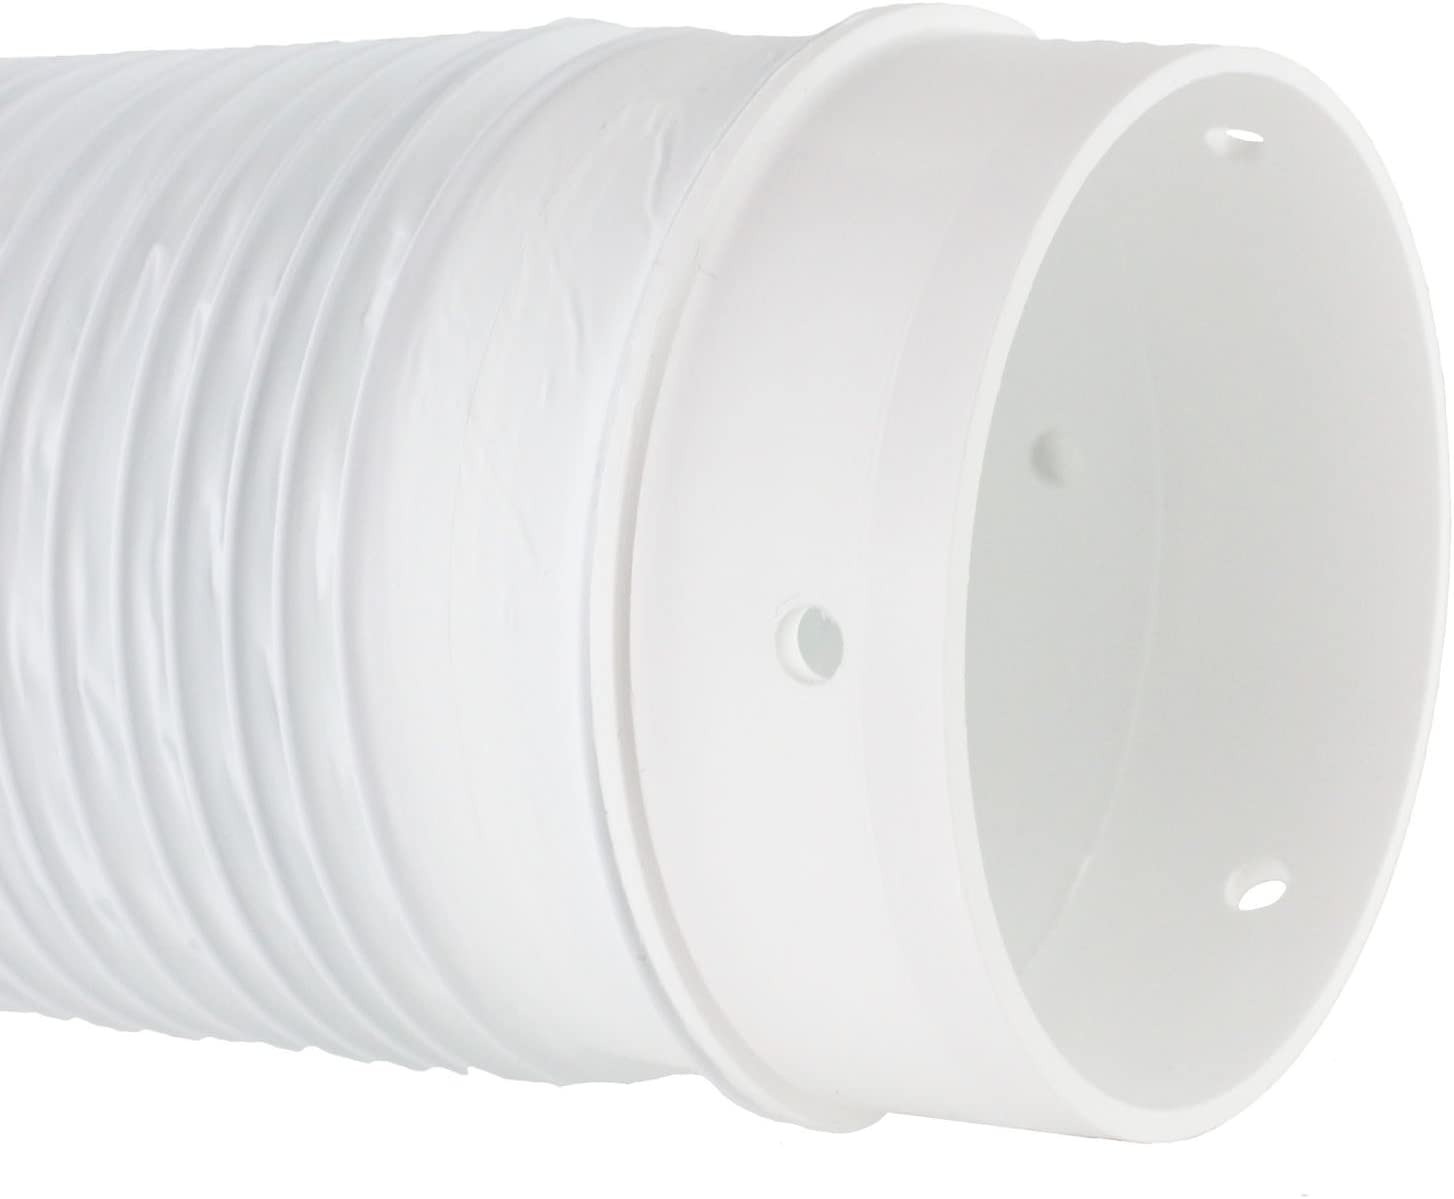 SPARES2GO Condenser Box /& Extra Long Hose Kit with Connection Ring for WESTINGHOUSE Tumble Dryer 4 // 100mm Diameter